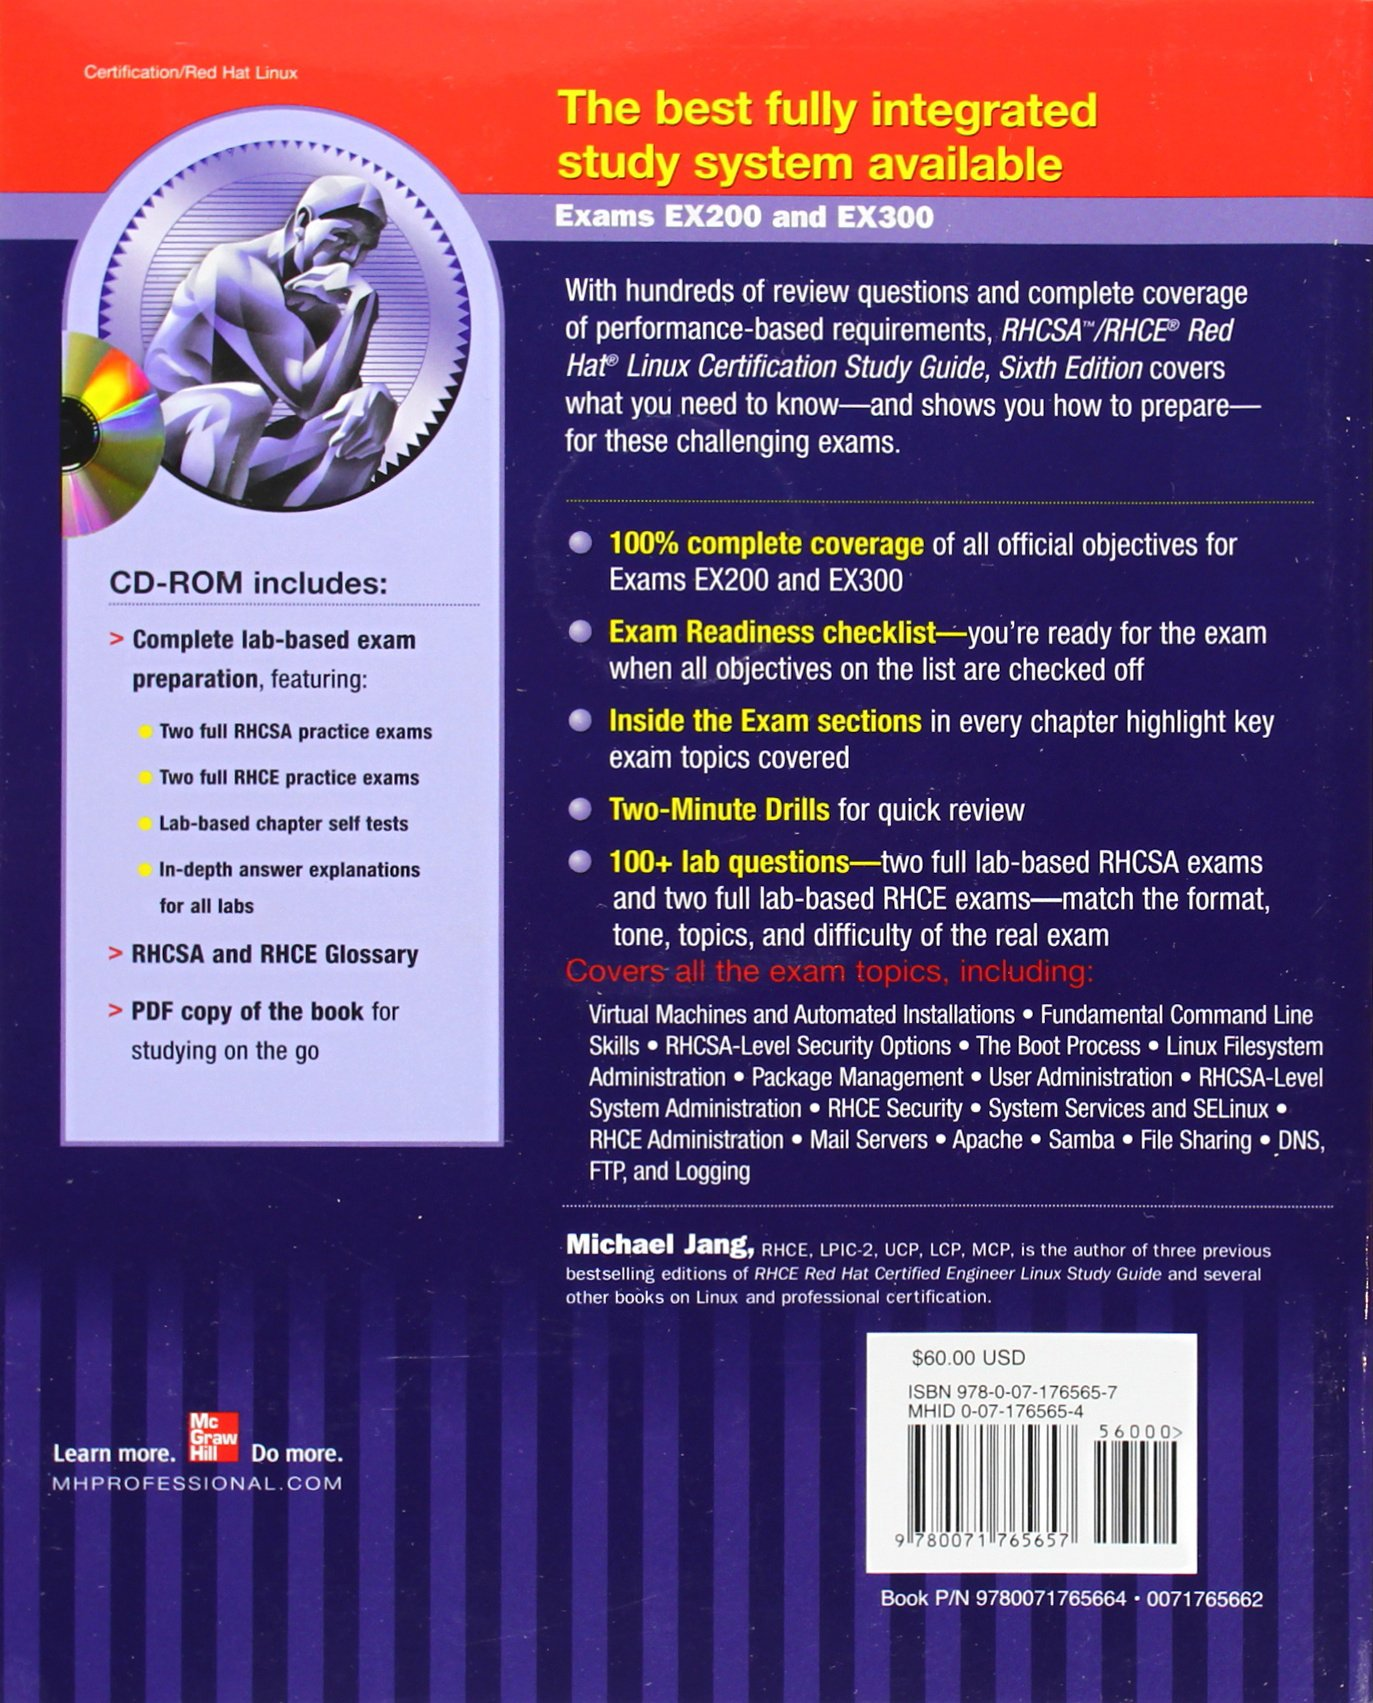 Rhcsa rhce red hat linux certification study guide cd rom amazon de michael jang fremdsprachige b cher